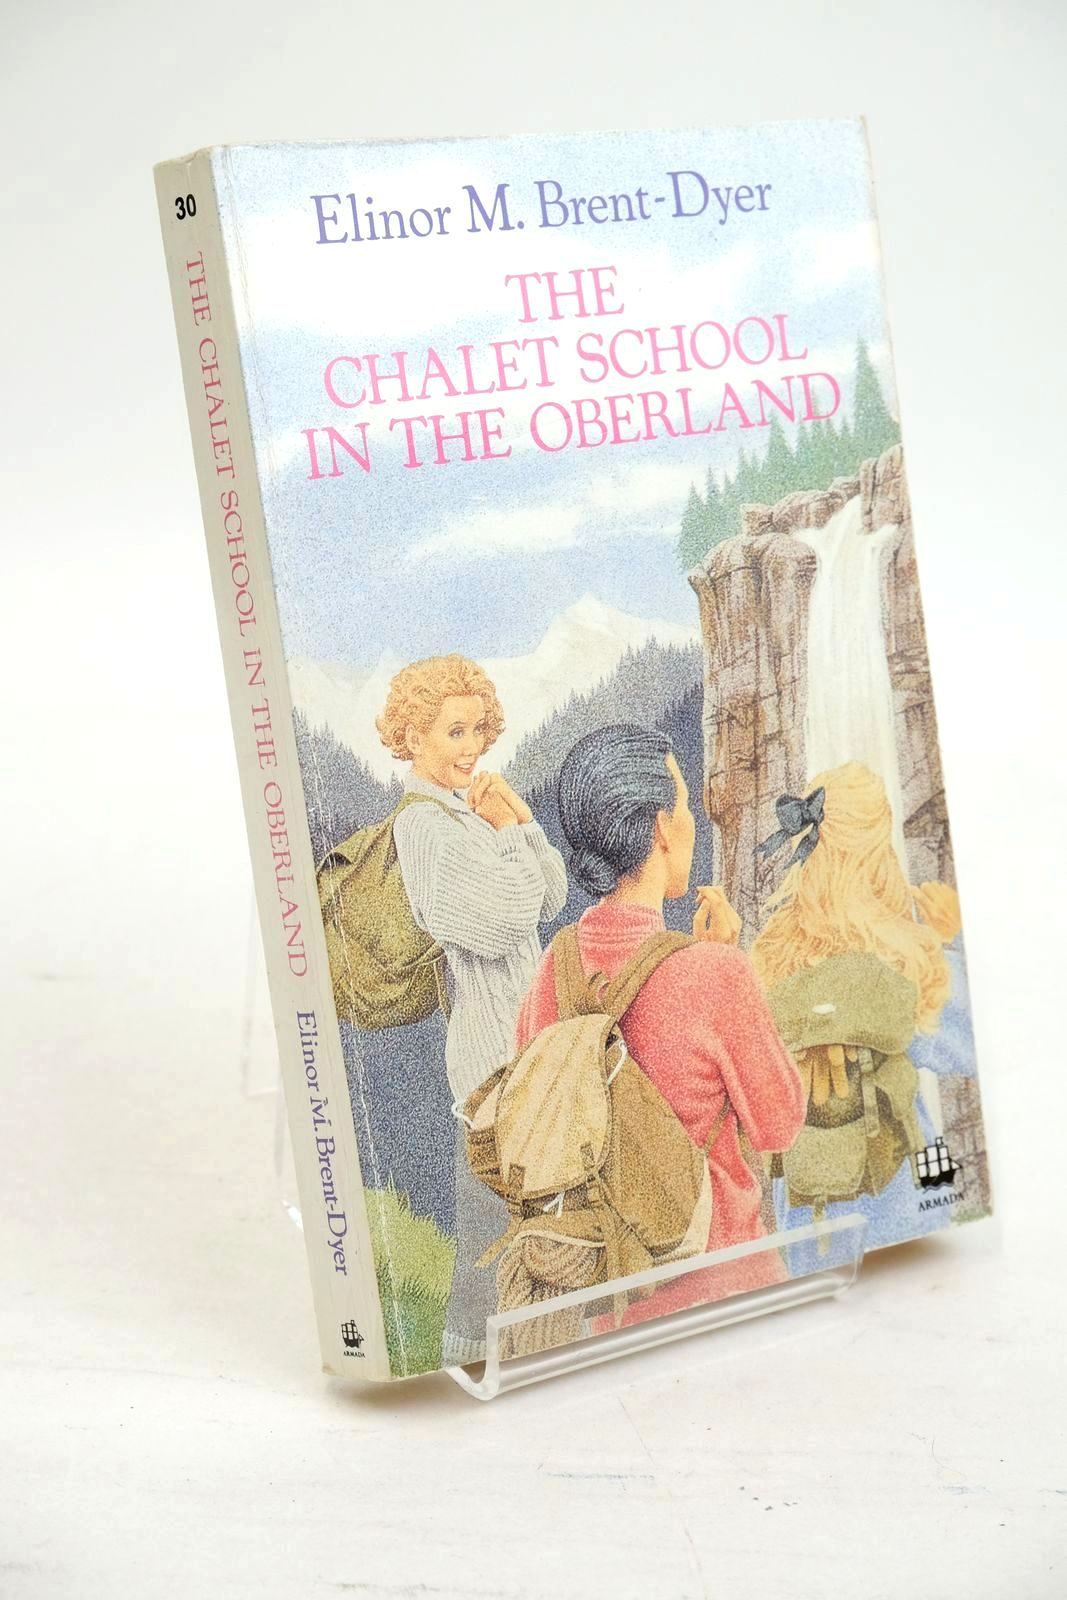 Photo of THE CHALET SCHOOL IN THE OBERLAND written by Brent-Dyer, Elinor M. published by Armada (STOCK CODE: 1320824)  for sale by Stella & Rose's Books